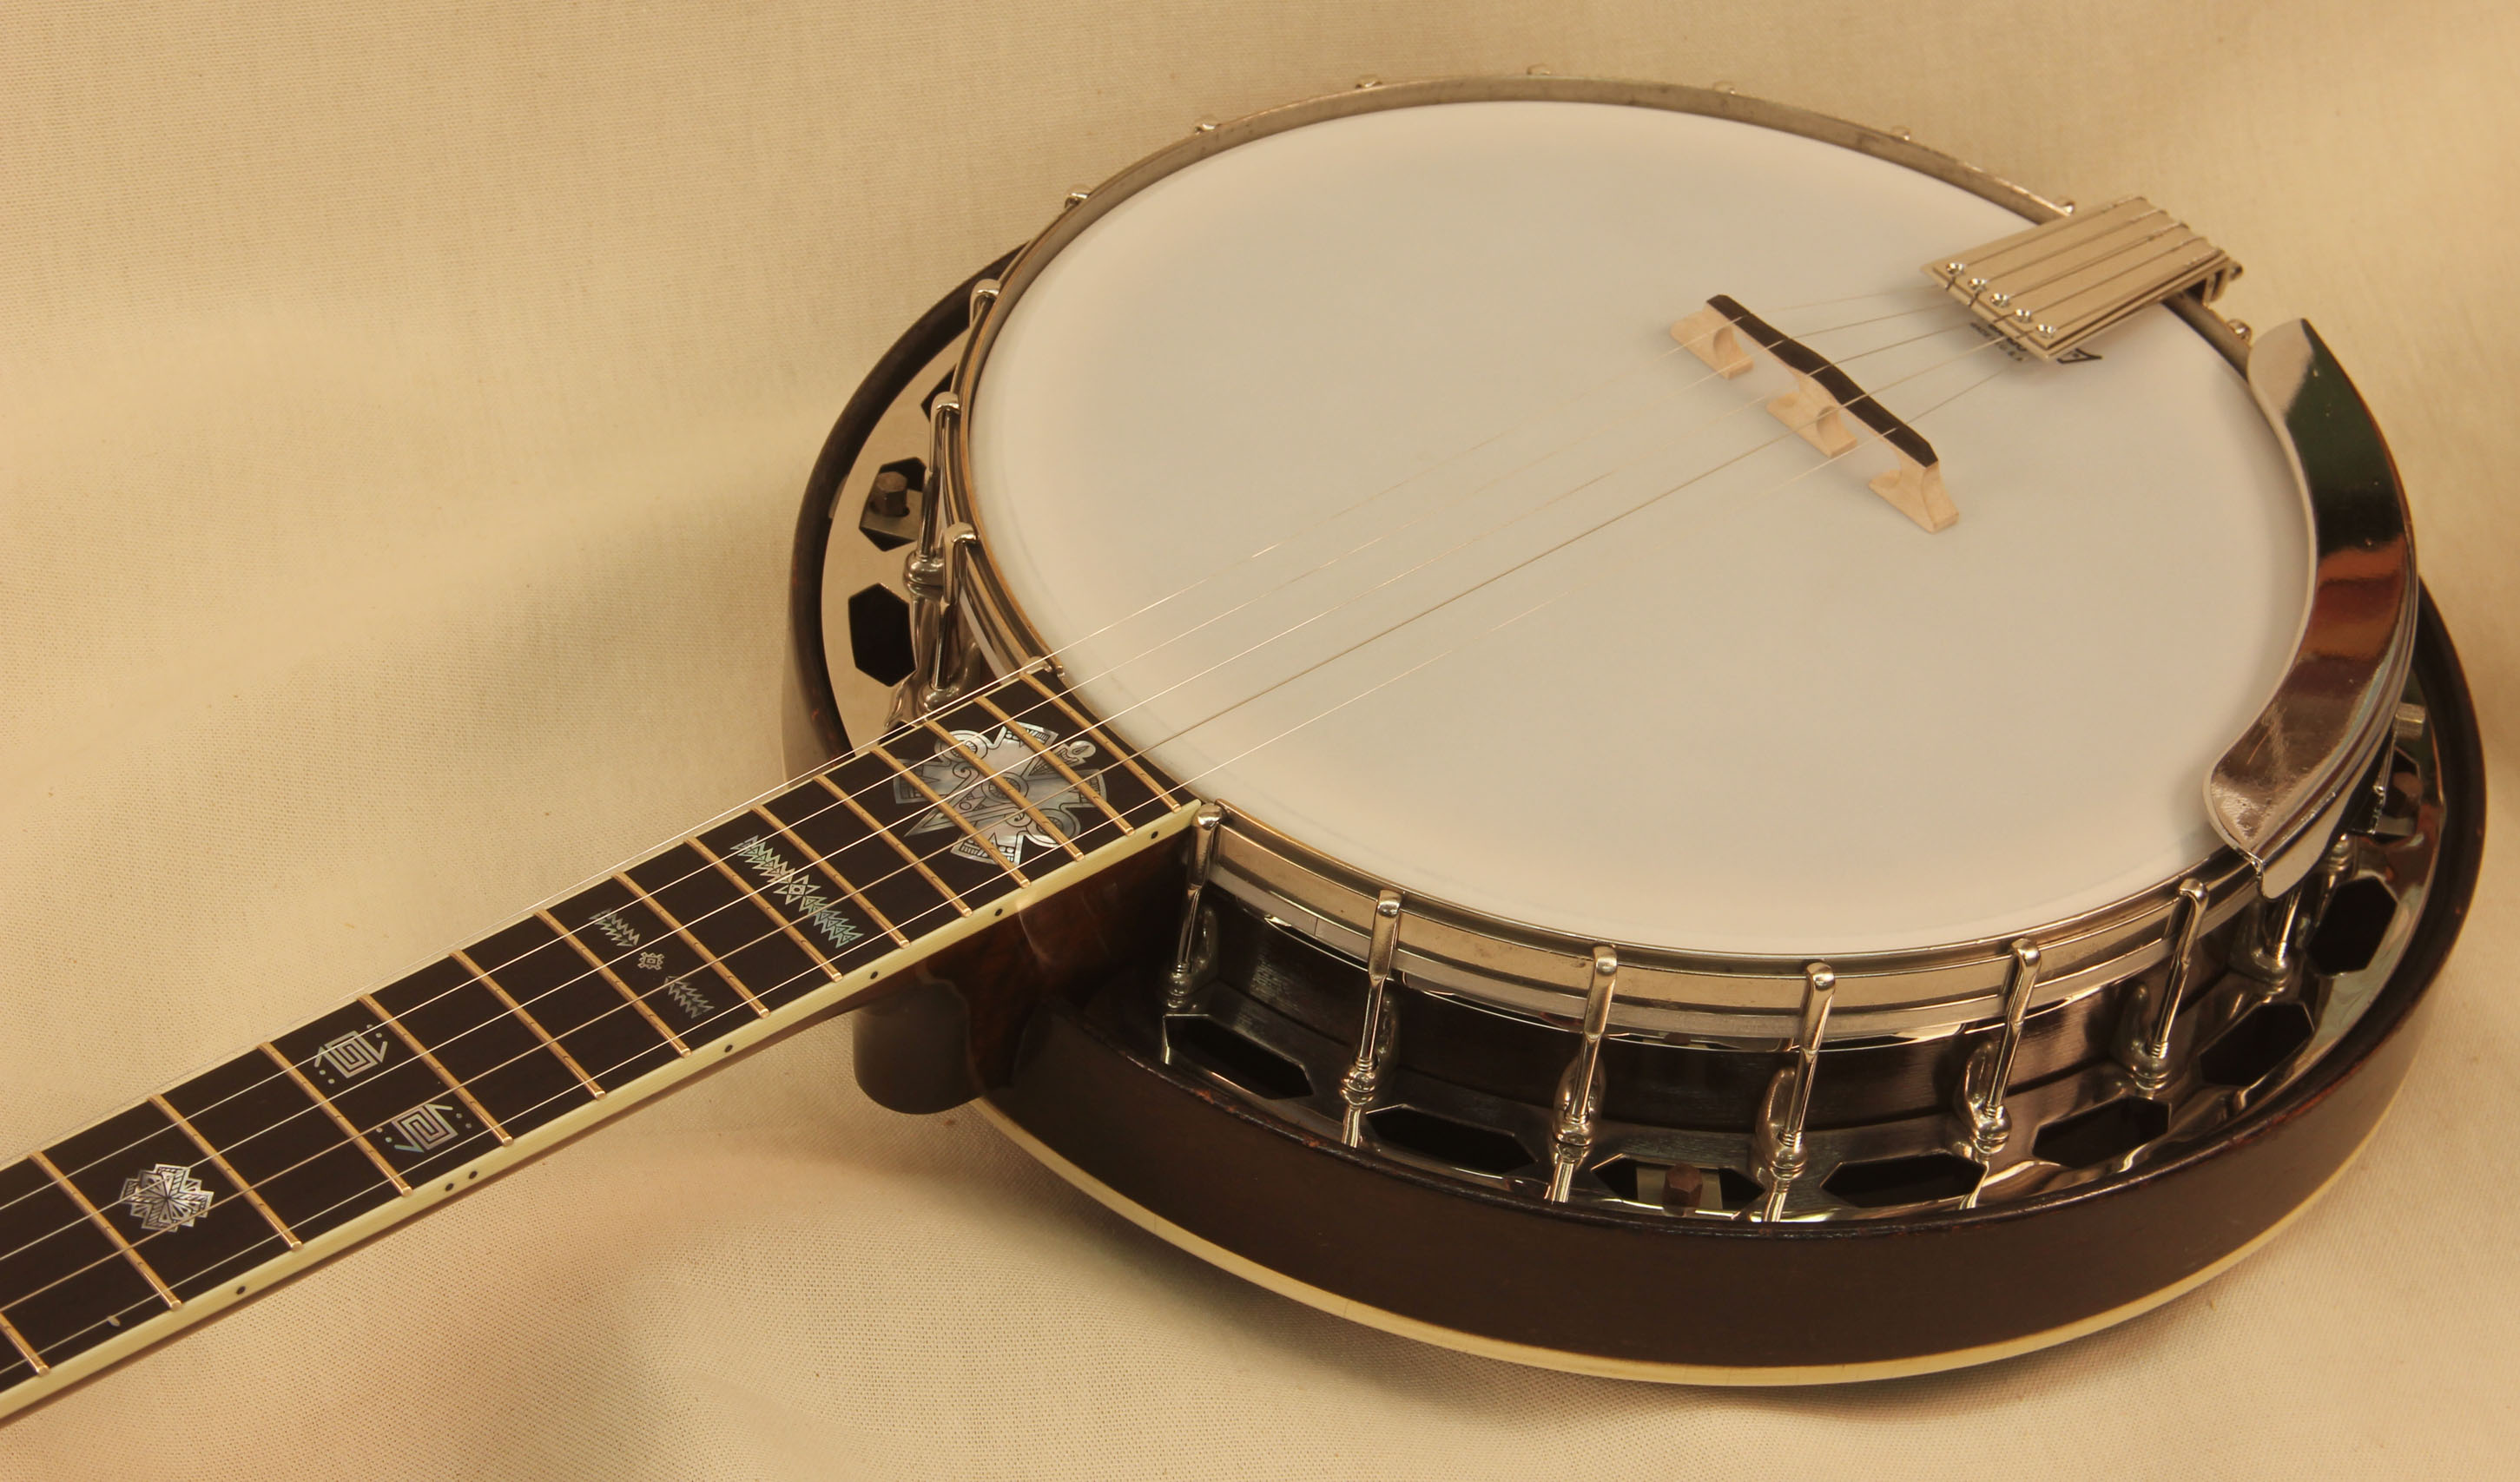 Gibson TB-2 Pyramid Tone Ring Banjo with Conversion Neck